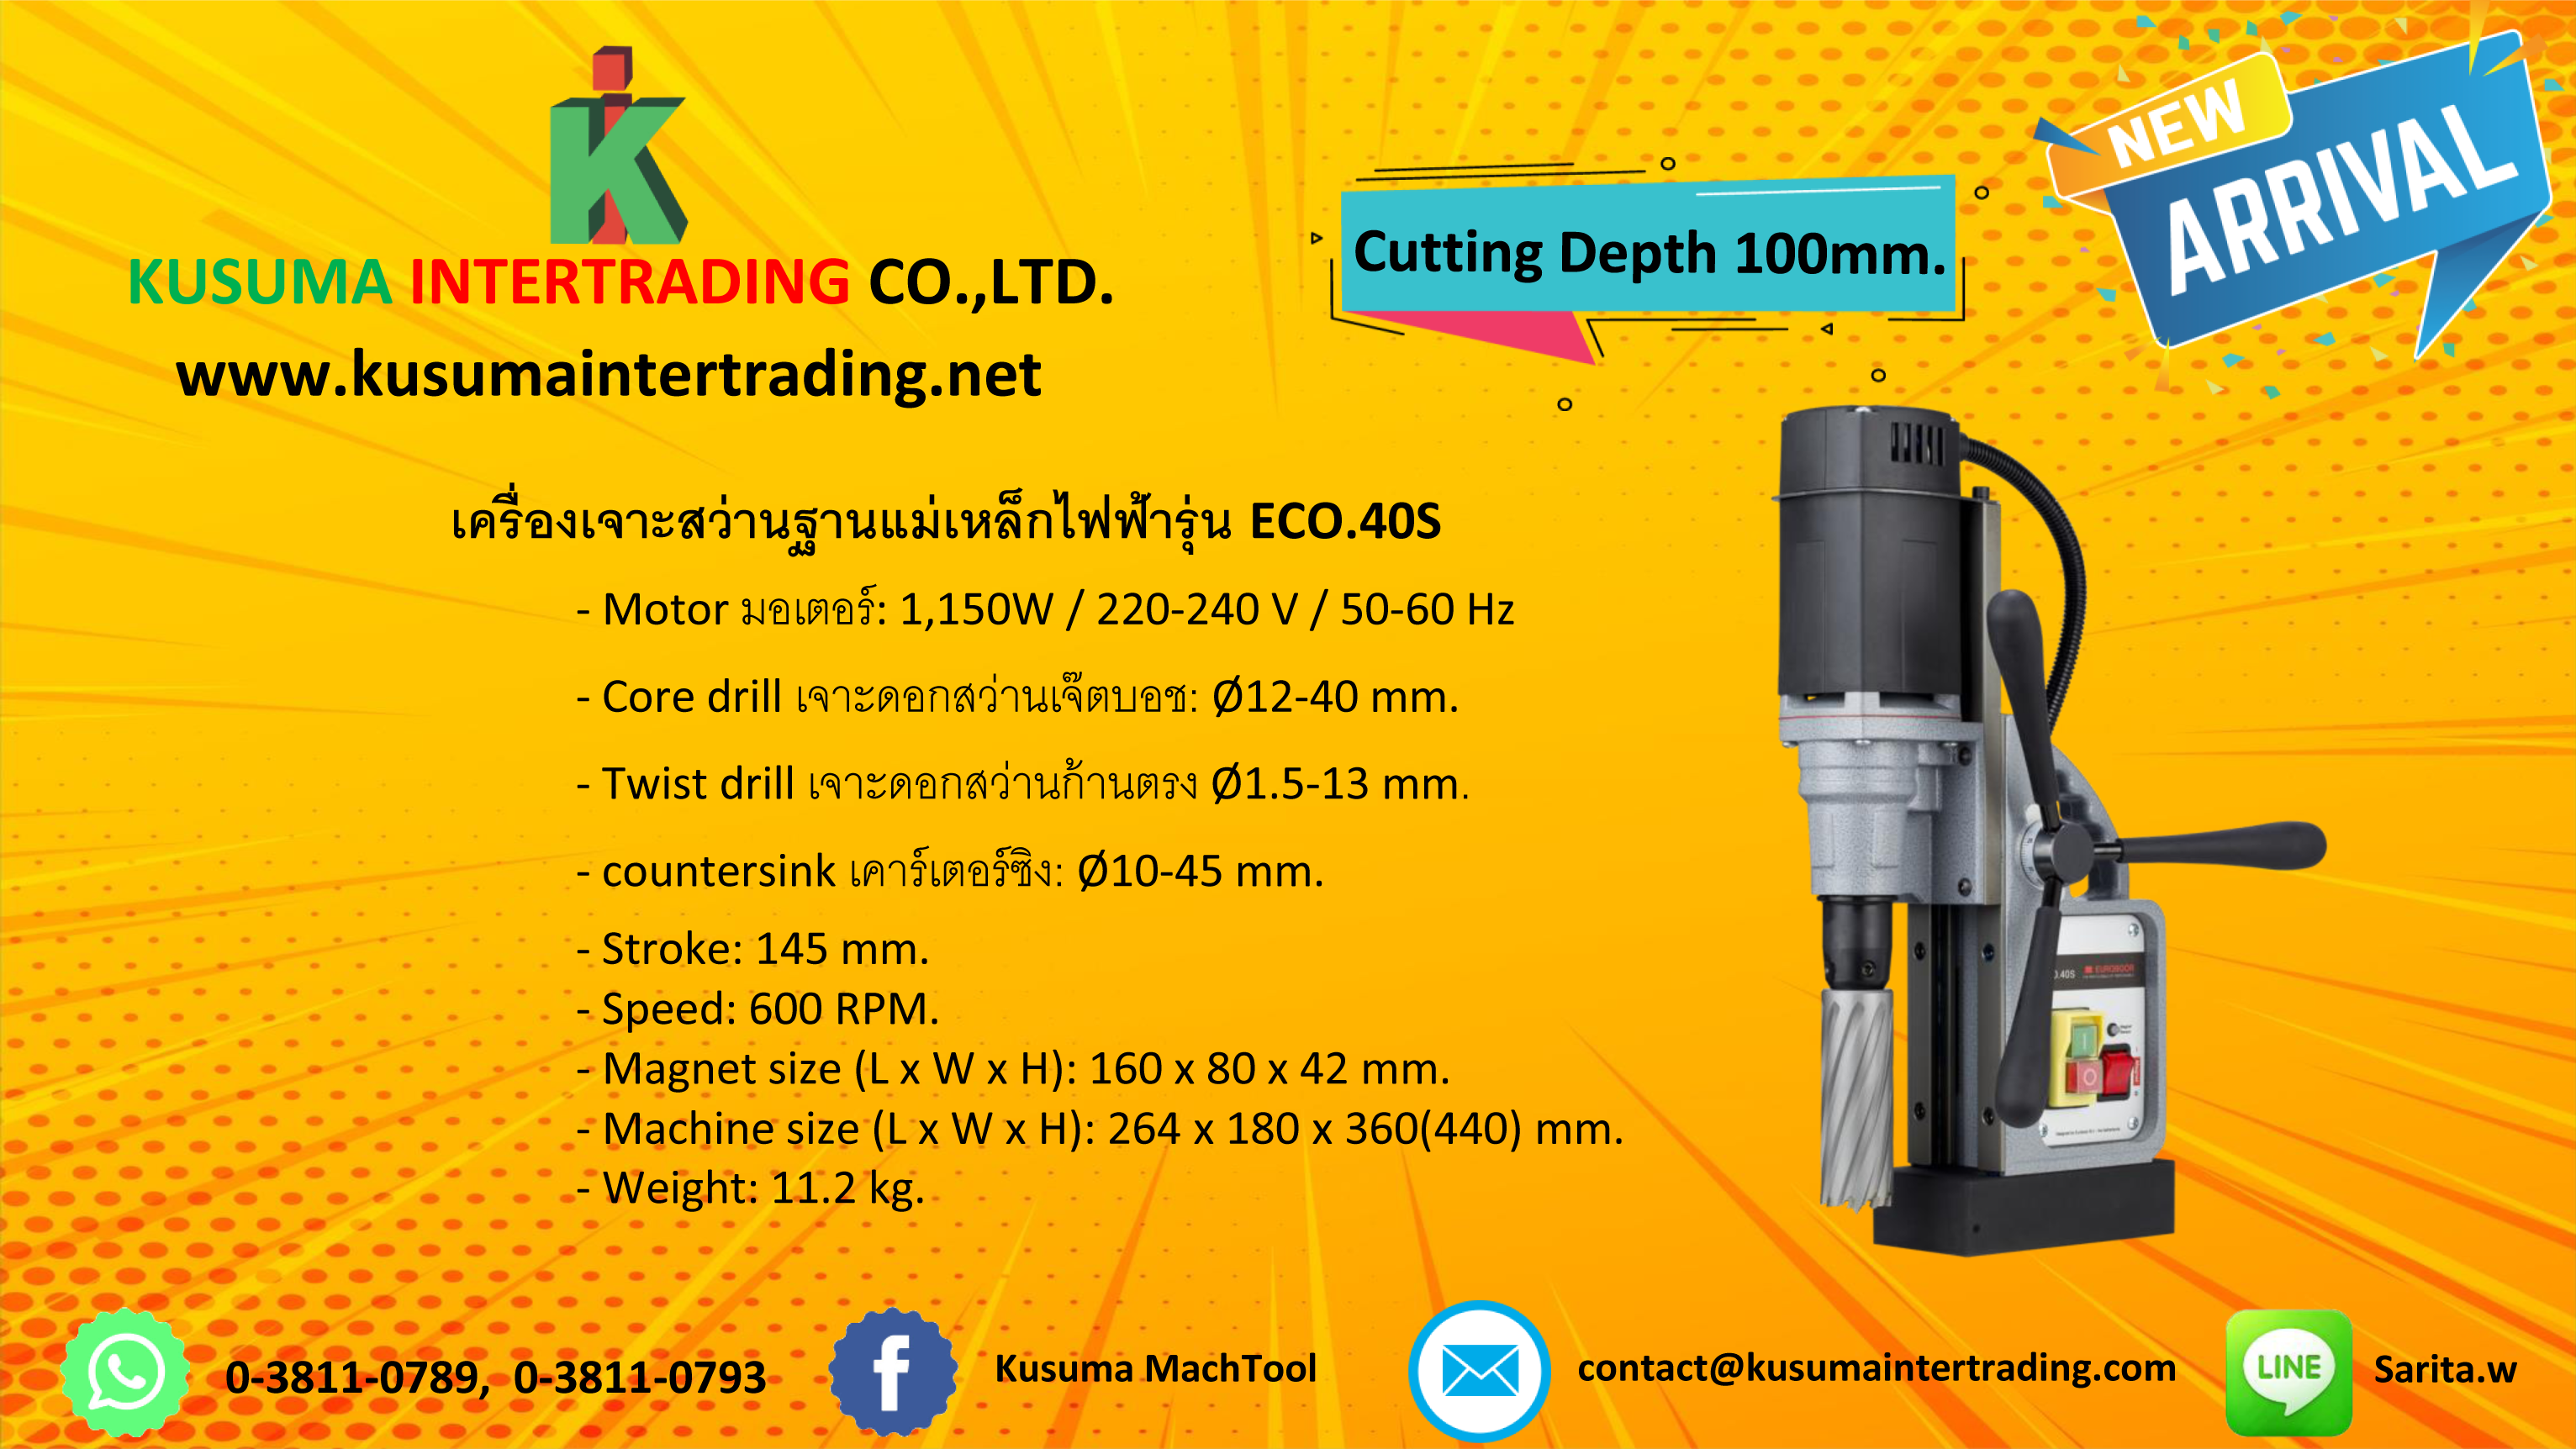 Magnetic core drill machine à¤Ã×èͧà¨ÒÐÊÇèÒ¹°Ò¹áÁèàËÅç¡¢¹Ò´ Diameter Max.40mm. -Cutting depth 100mm.